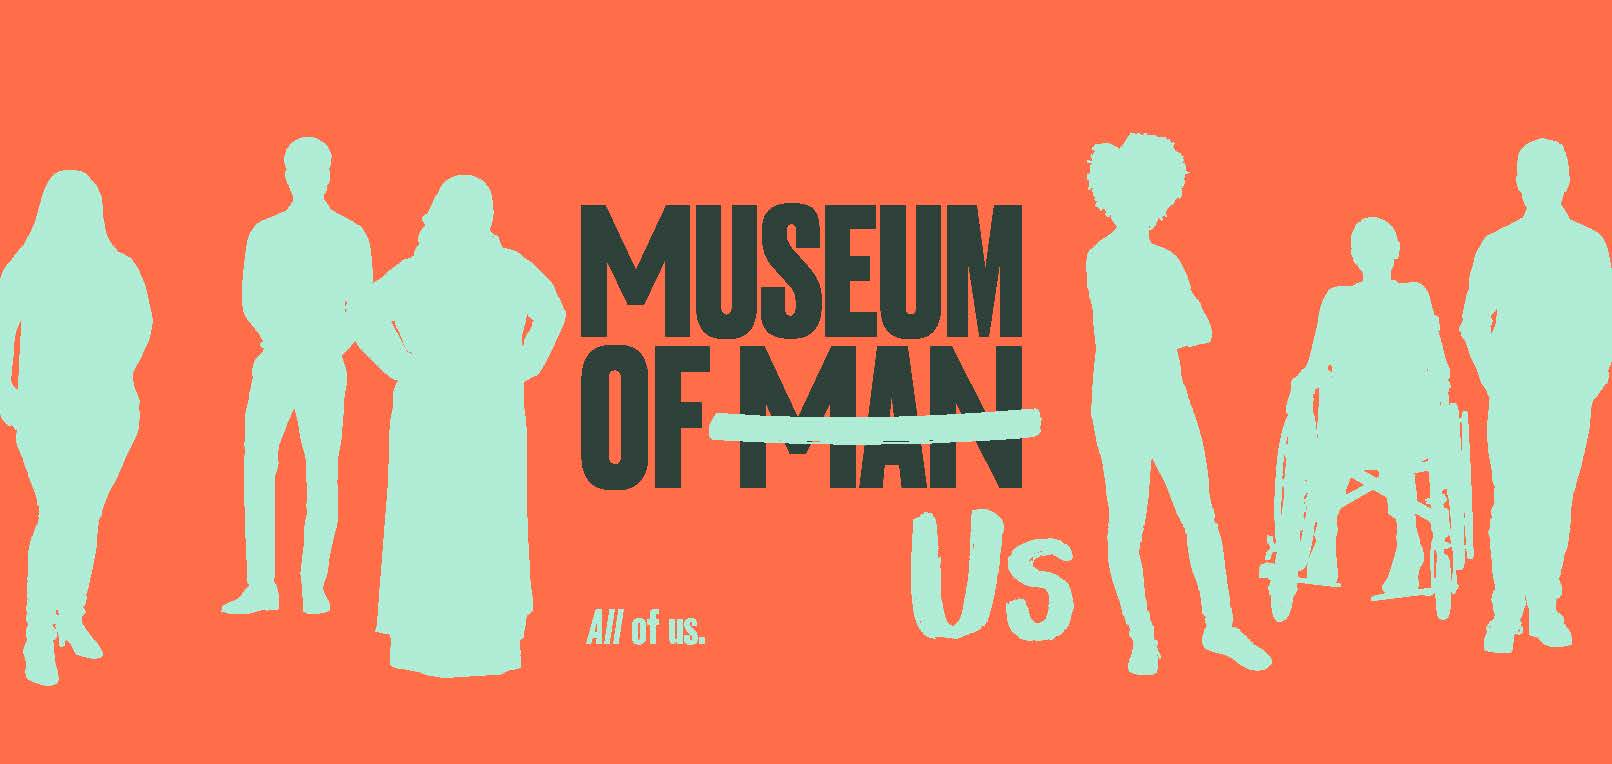 The Museum of Us - All of Us